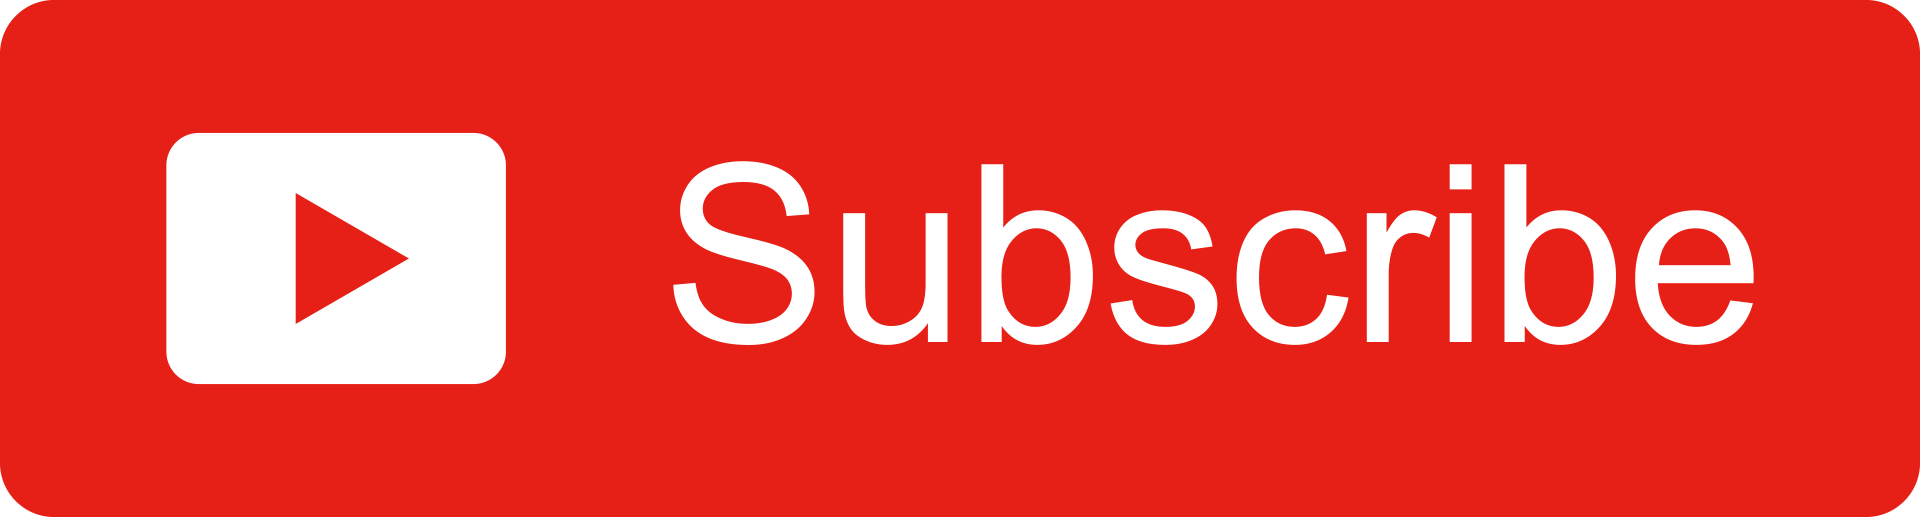 Free-Red-Subscribe-Button-By-AlfredoCreates